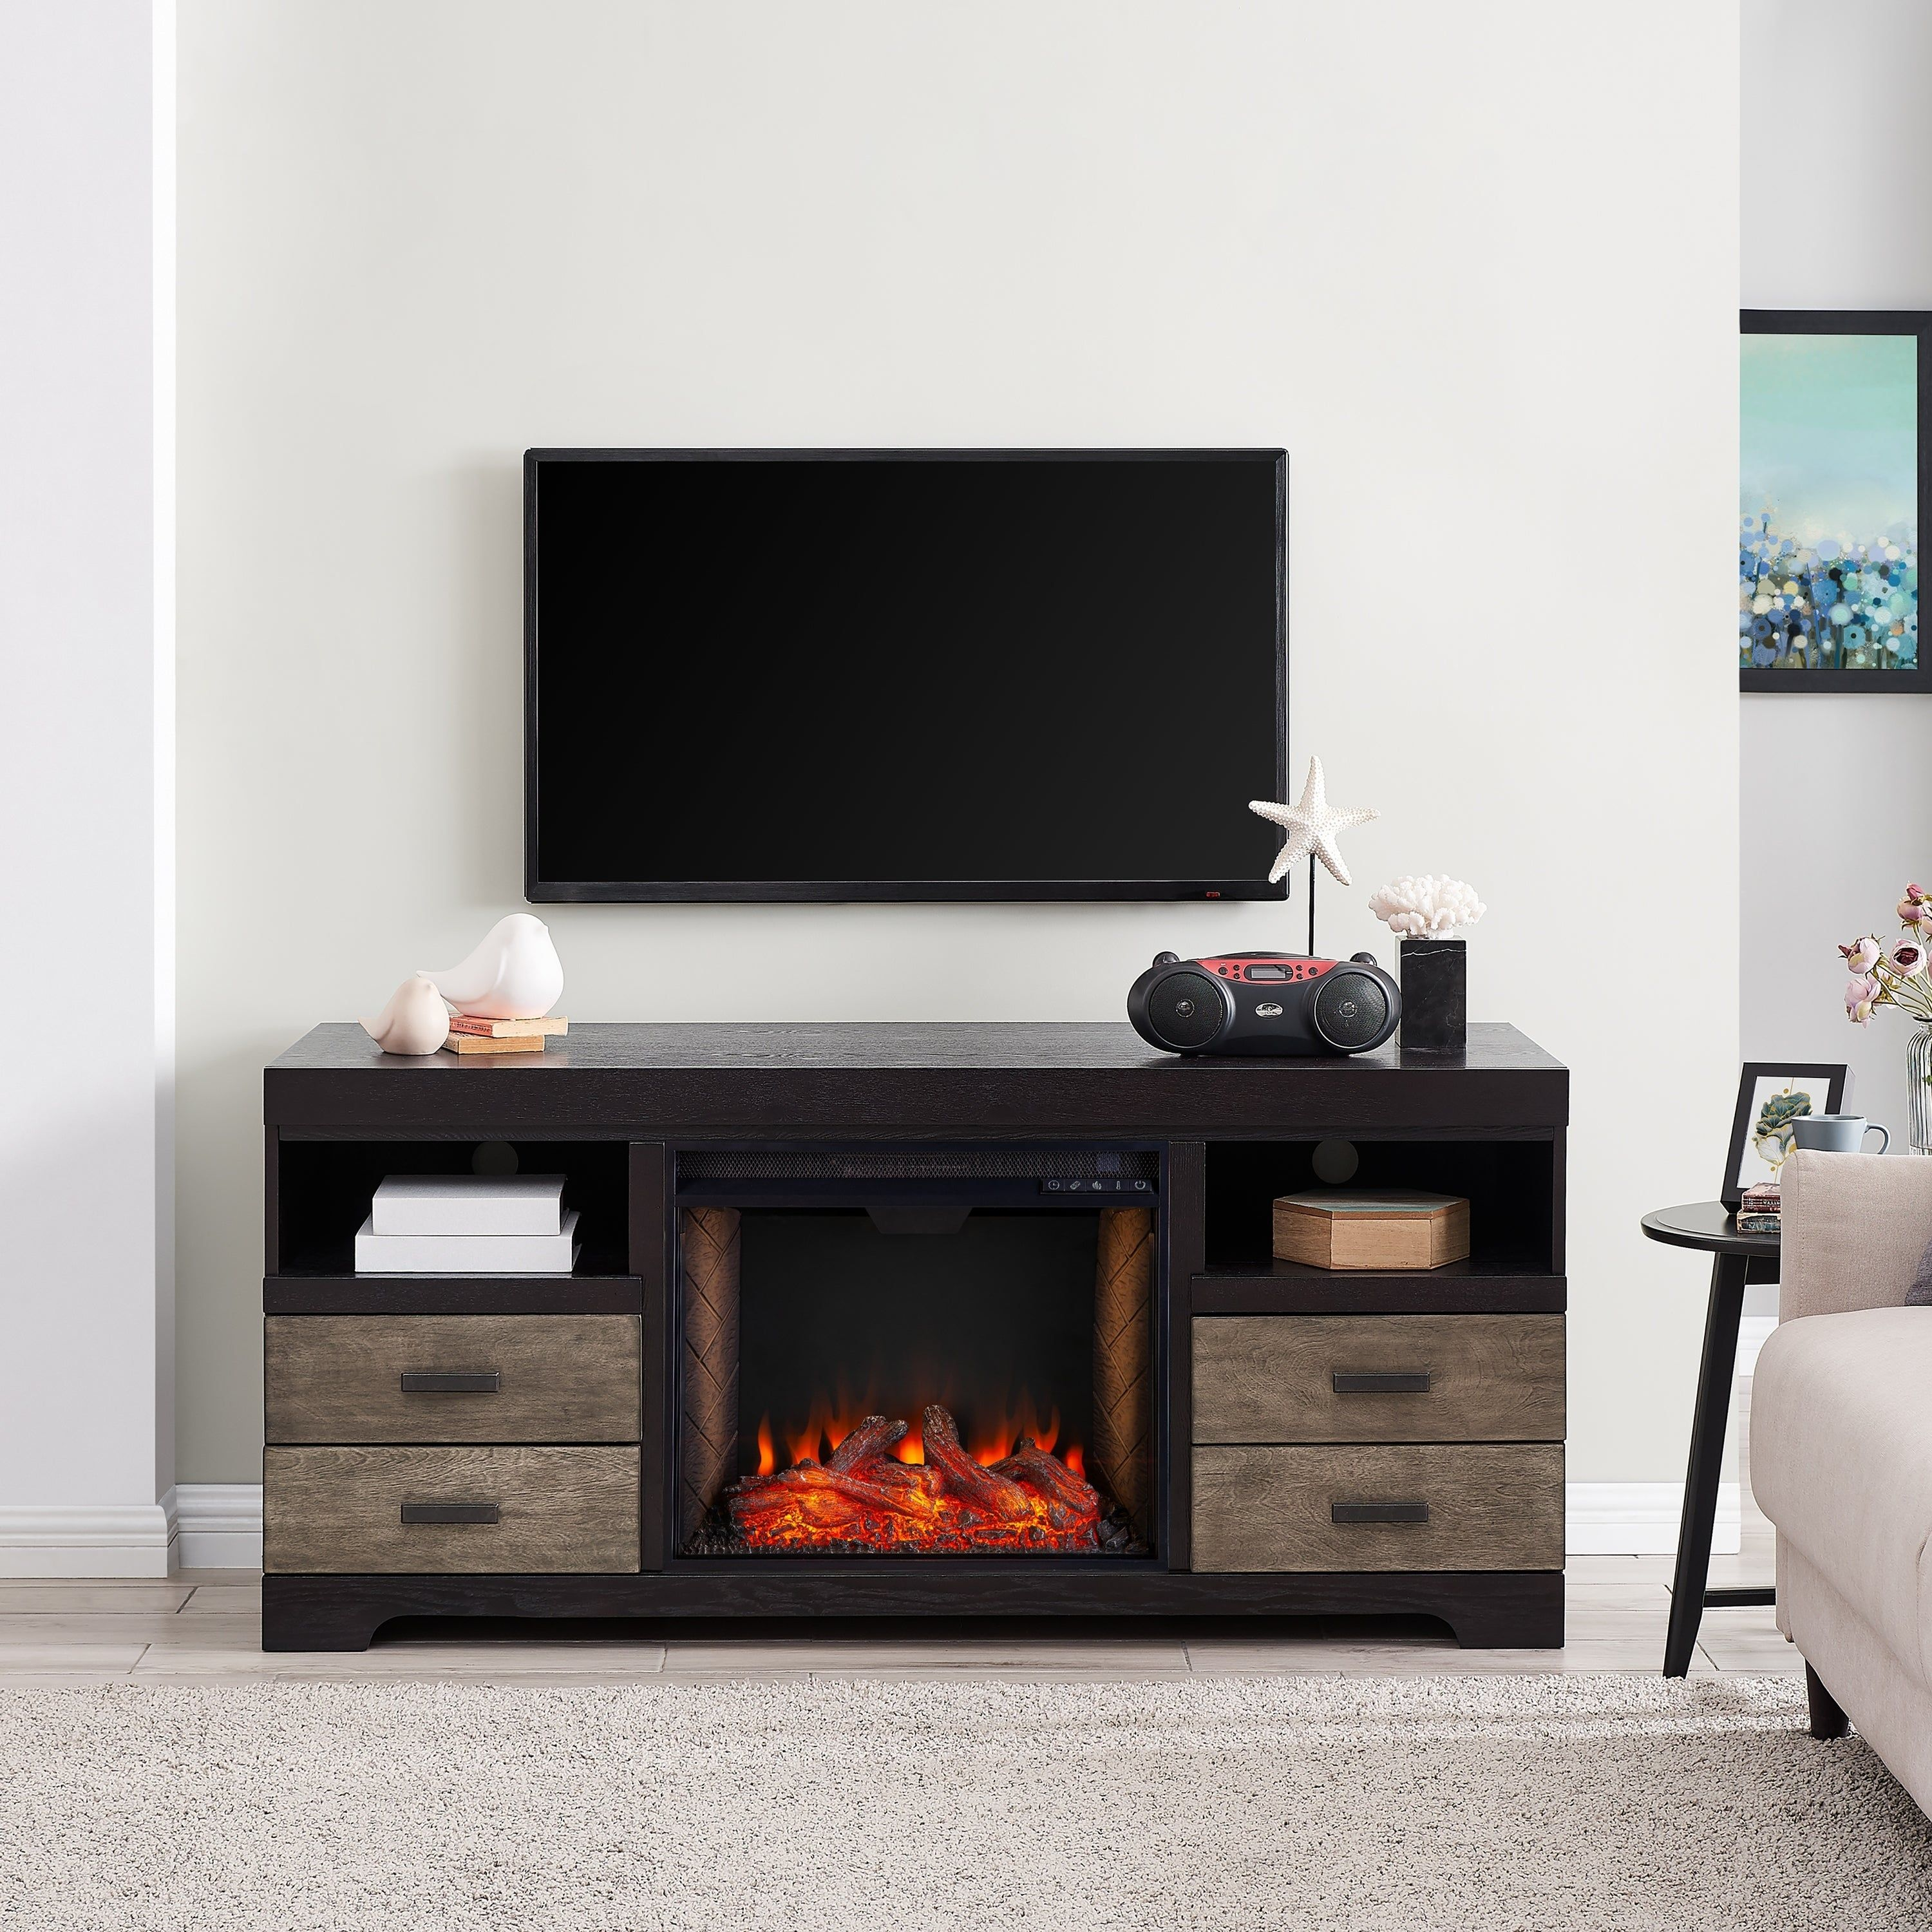 Harper Blvd Shawn Traditional Brown Alexa Enabled Fireplace Media Console Black Manufactured Wood Fireplace Media Console Media Electric Fireplace Living Room Tv